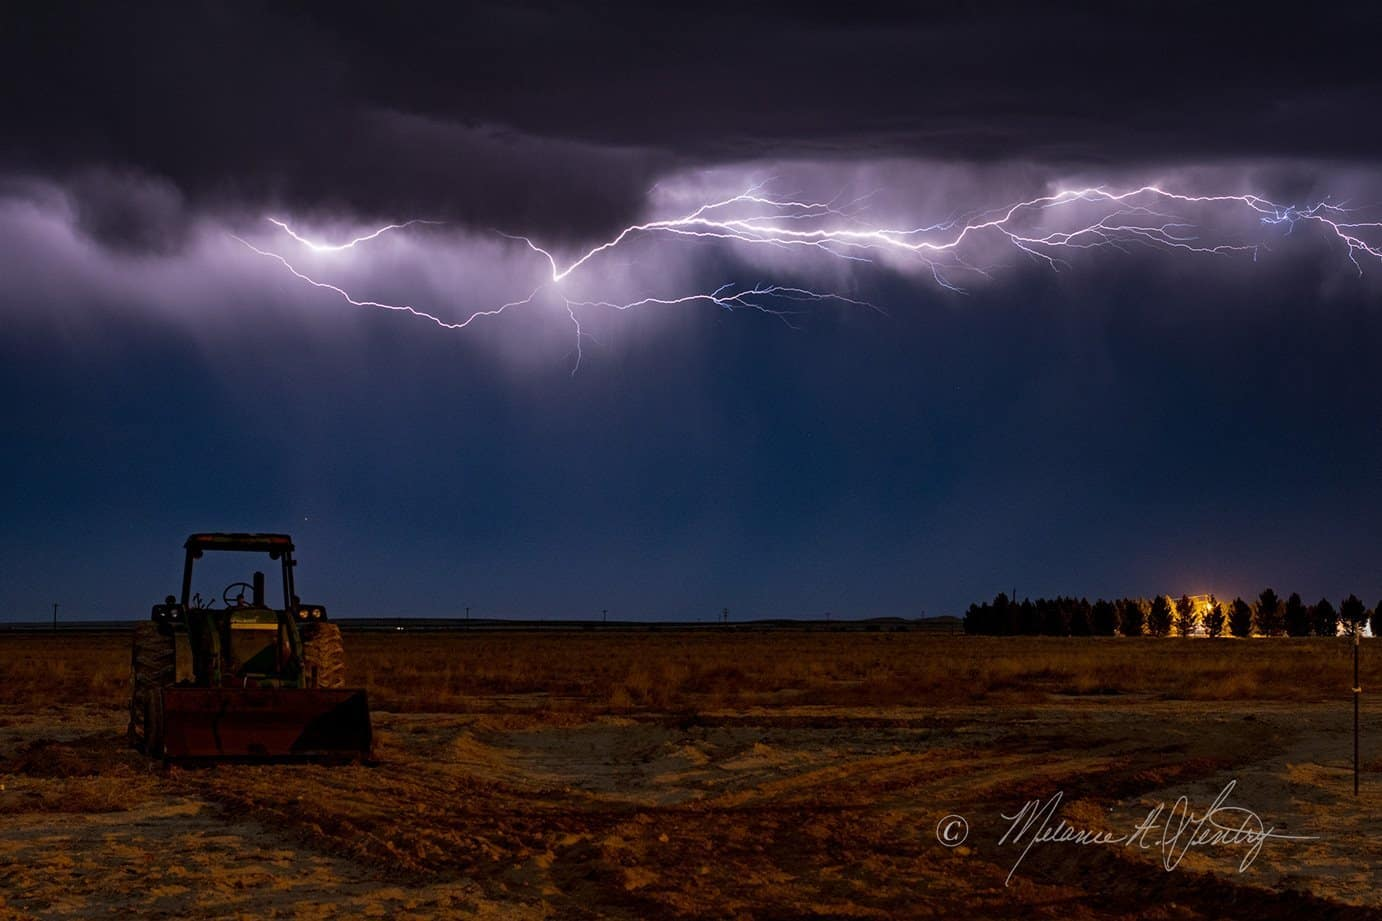 A pop up thunderstorm and an old John Deere in far west Texas - what a great way to wrap up the weekend and start the week ahead!